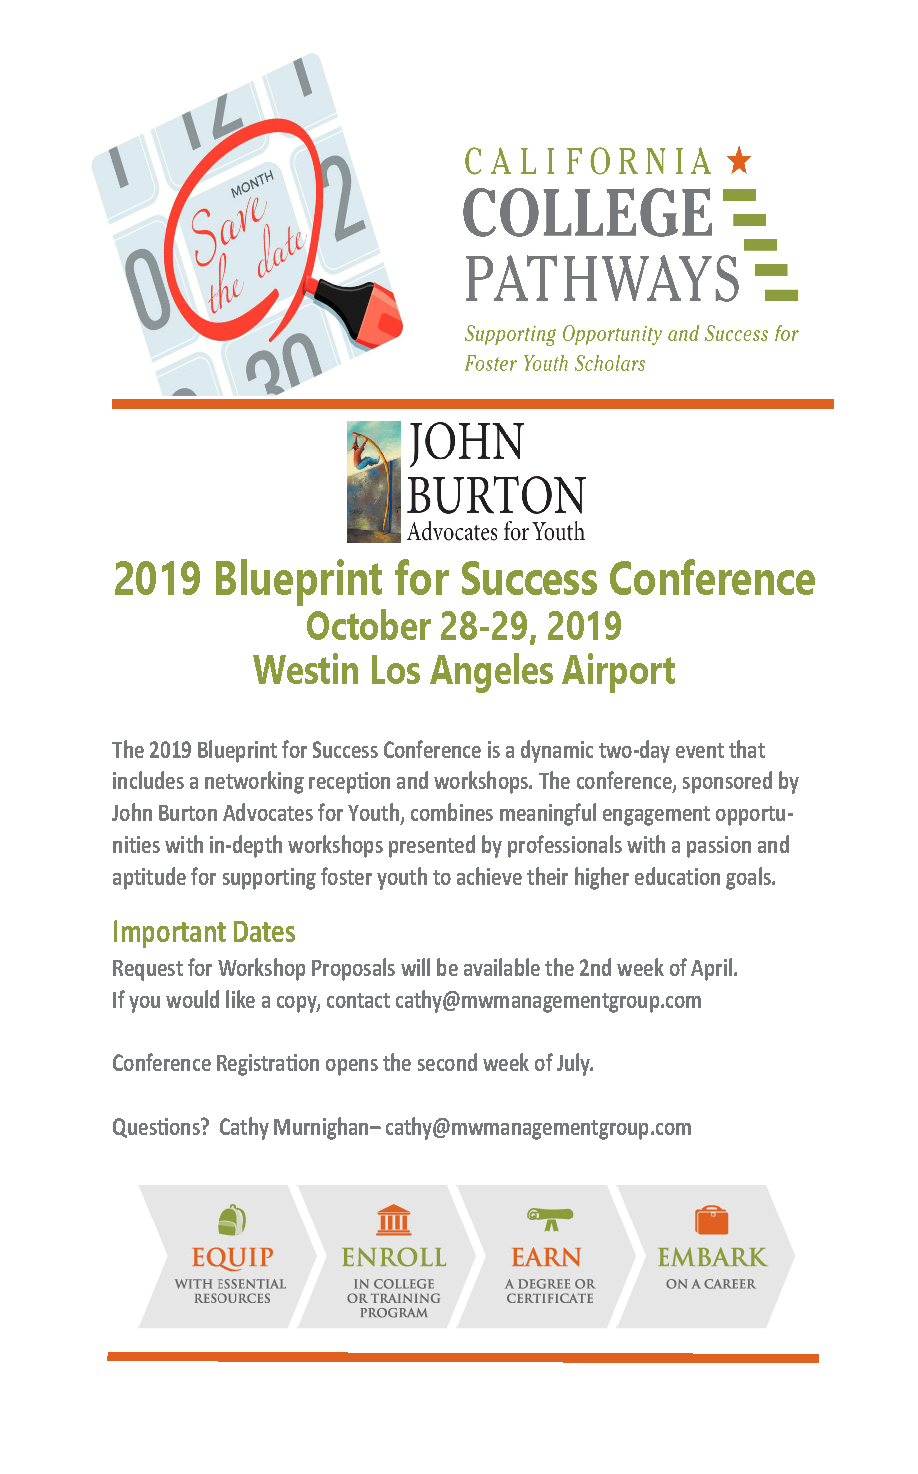 2019 Blueprint for Success Conference